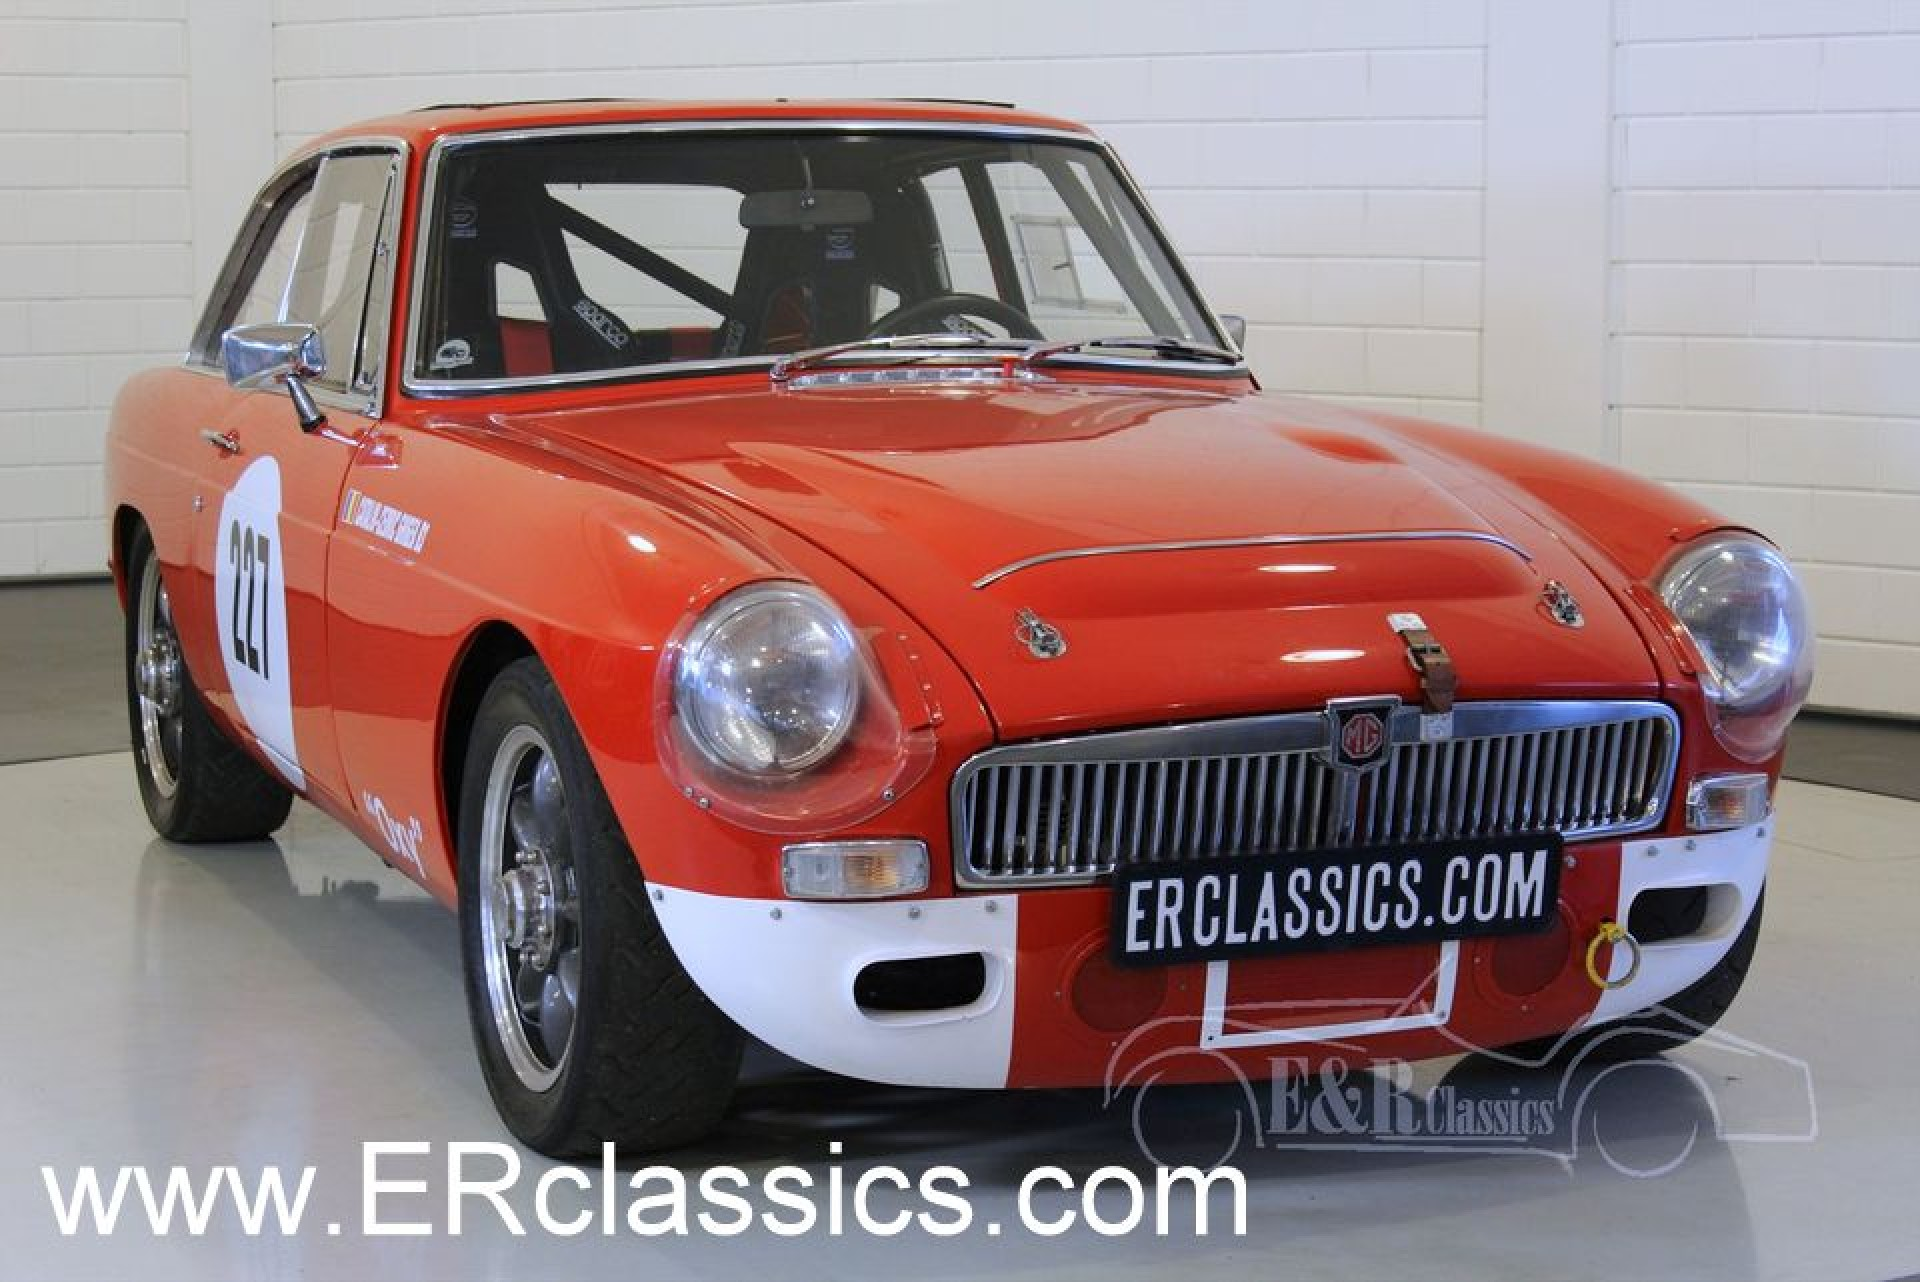 MGC GT 1968 for sale at ERclassics